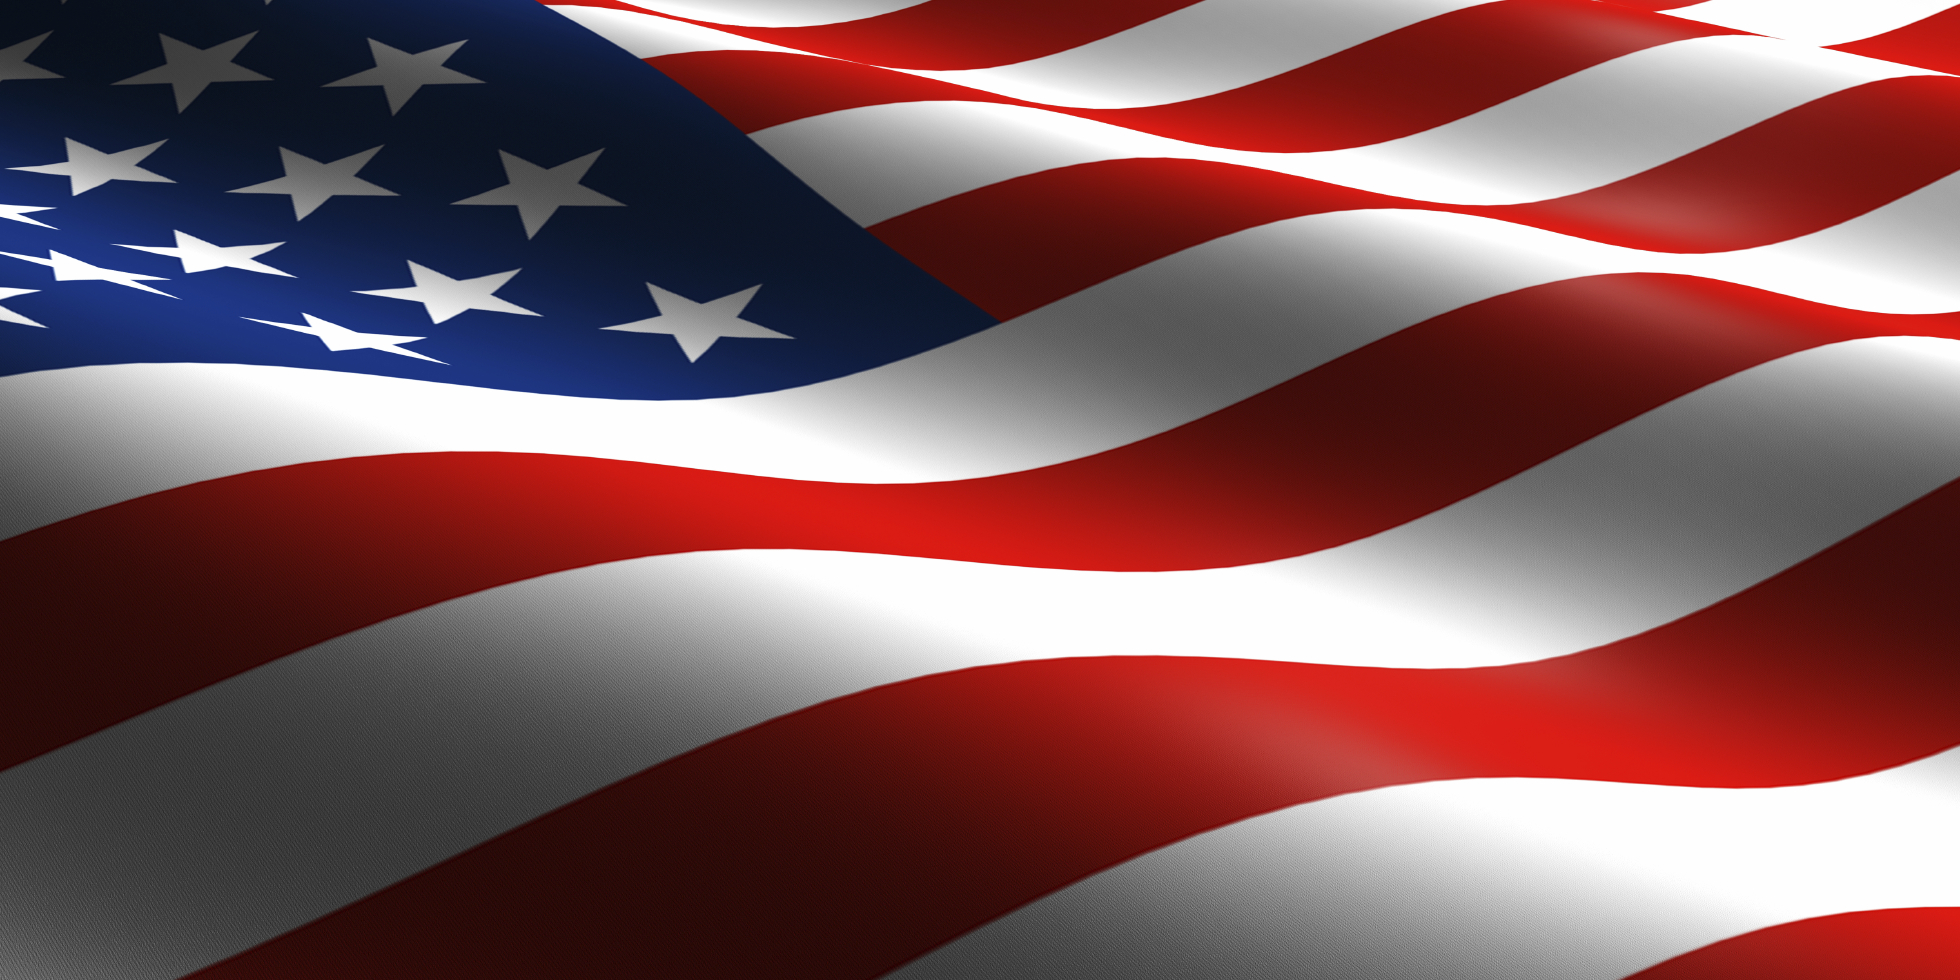 United State Flag Wallpaper HD 1960x980